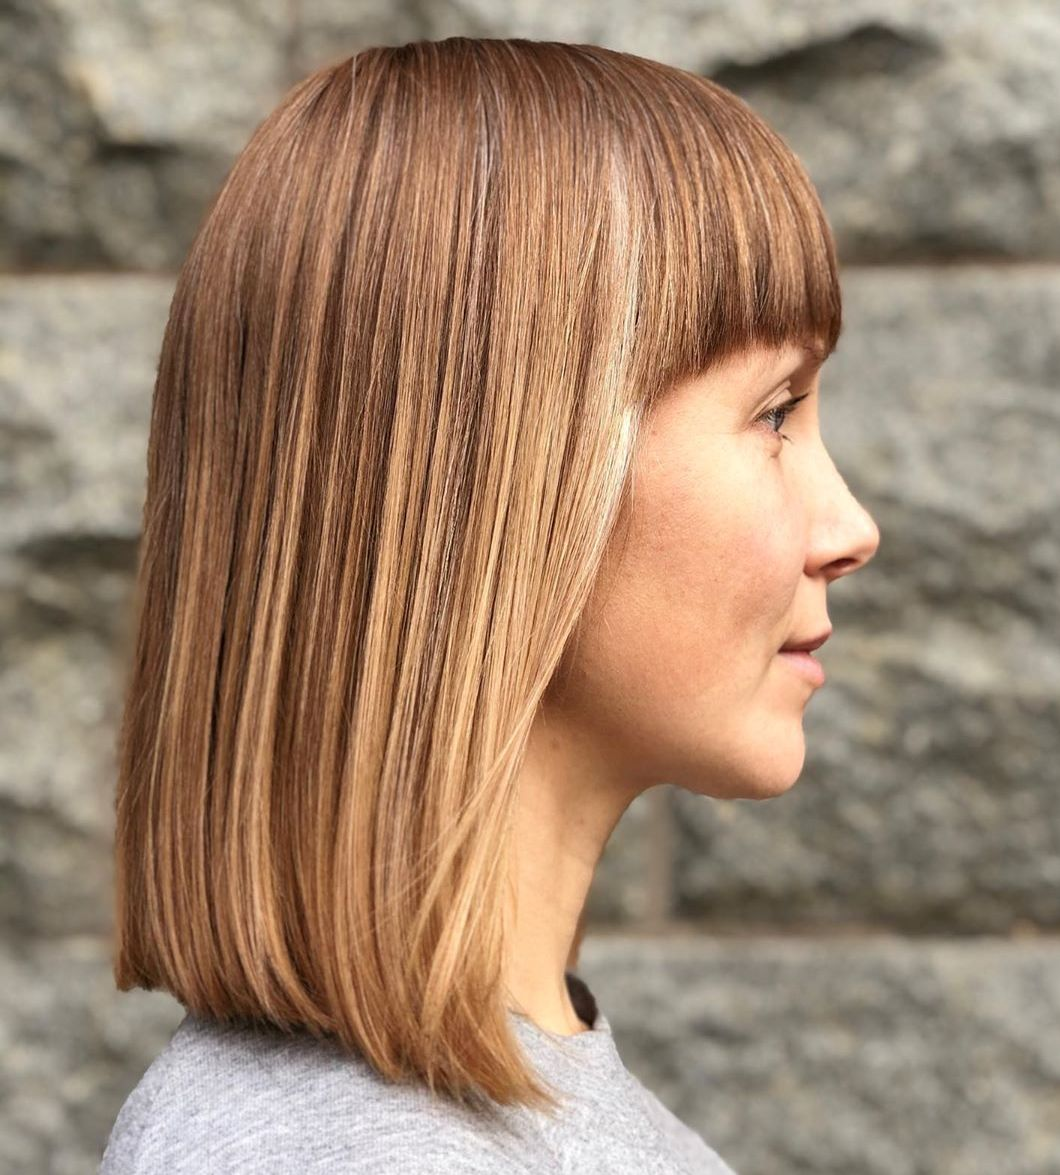 Long Bob with Bangs for Straight Hair